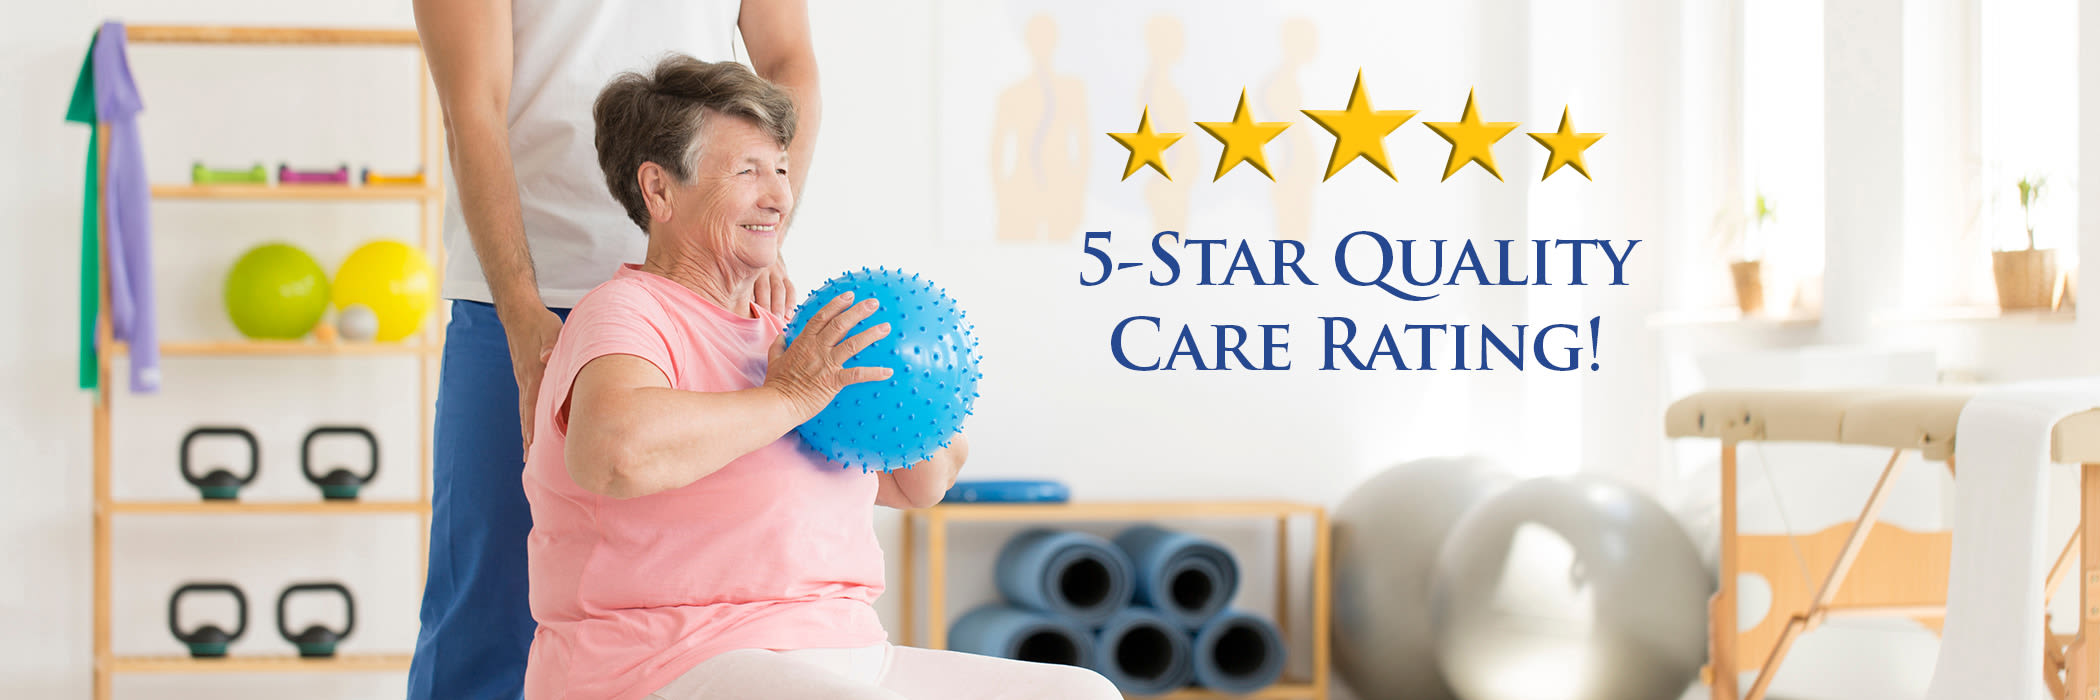 5-star Quality Care Rating